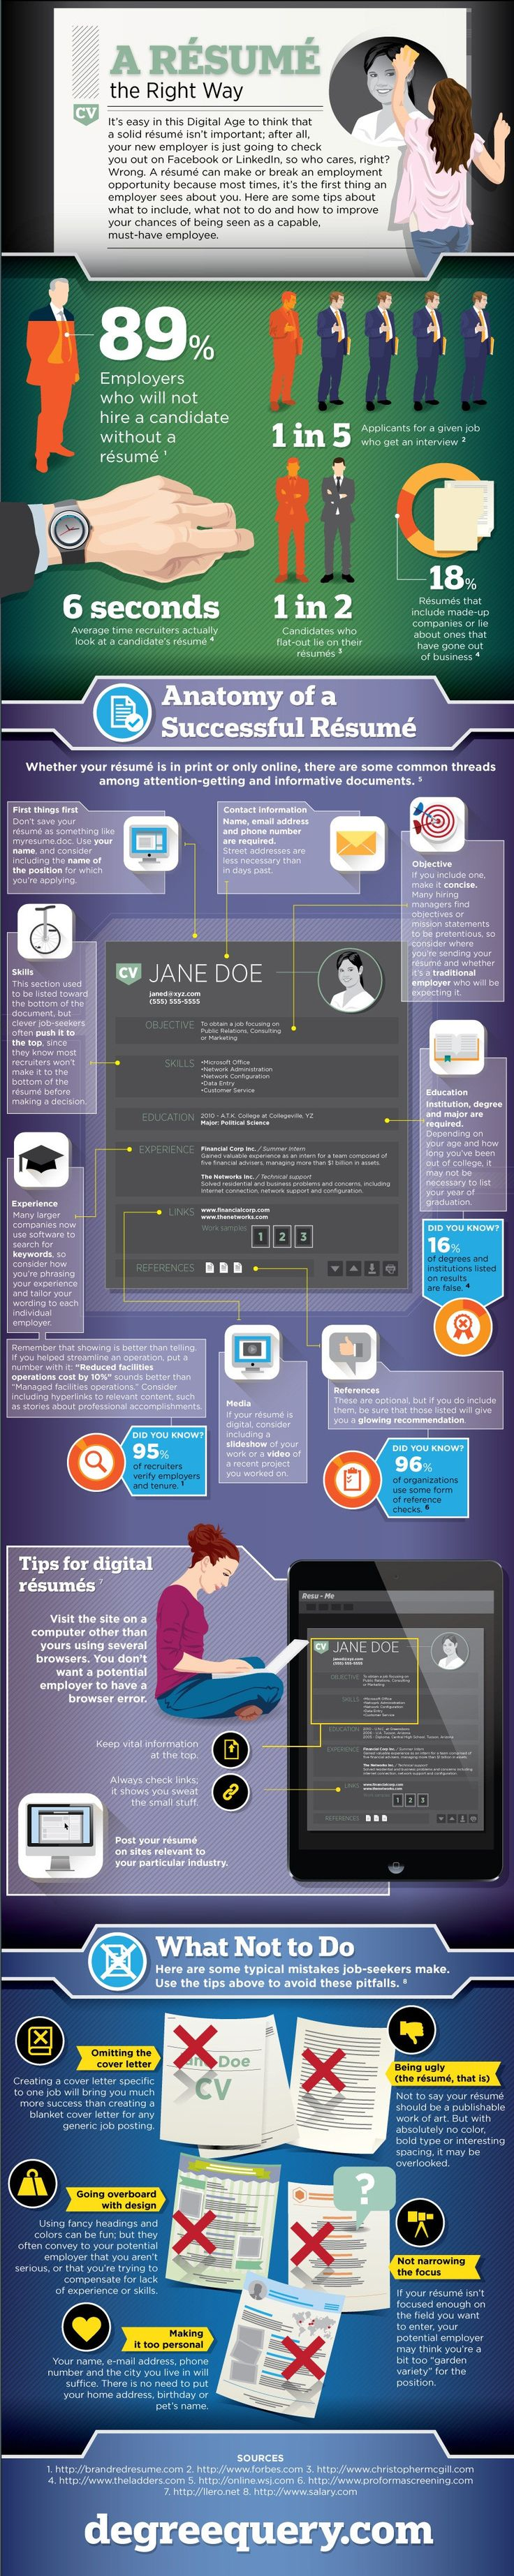 It's easy in this Digital Age to think that a solid resume isn't important; after all, your new employer is just going to check you out on Facebook or LinkedIn, so who cares, right? Wrong. A resume can make or break an employment opportunity because most times, it's the first thing an employer sees about you. Here are some tips about what to include, what not to do and how to improve your chances of being seen as a capable, must-have employee.